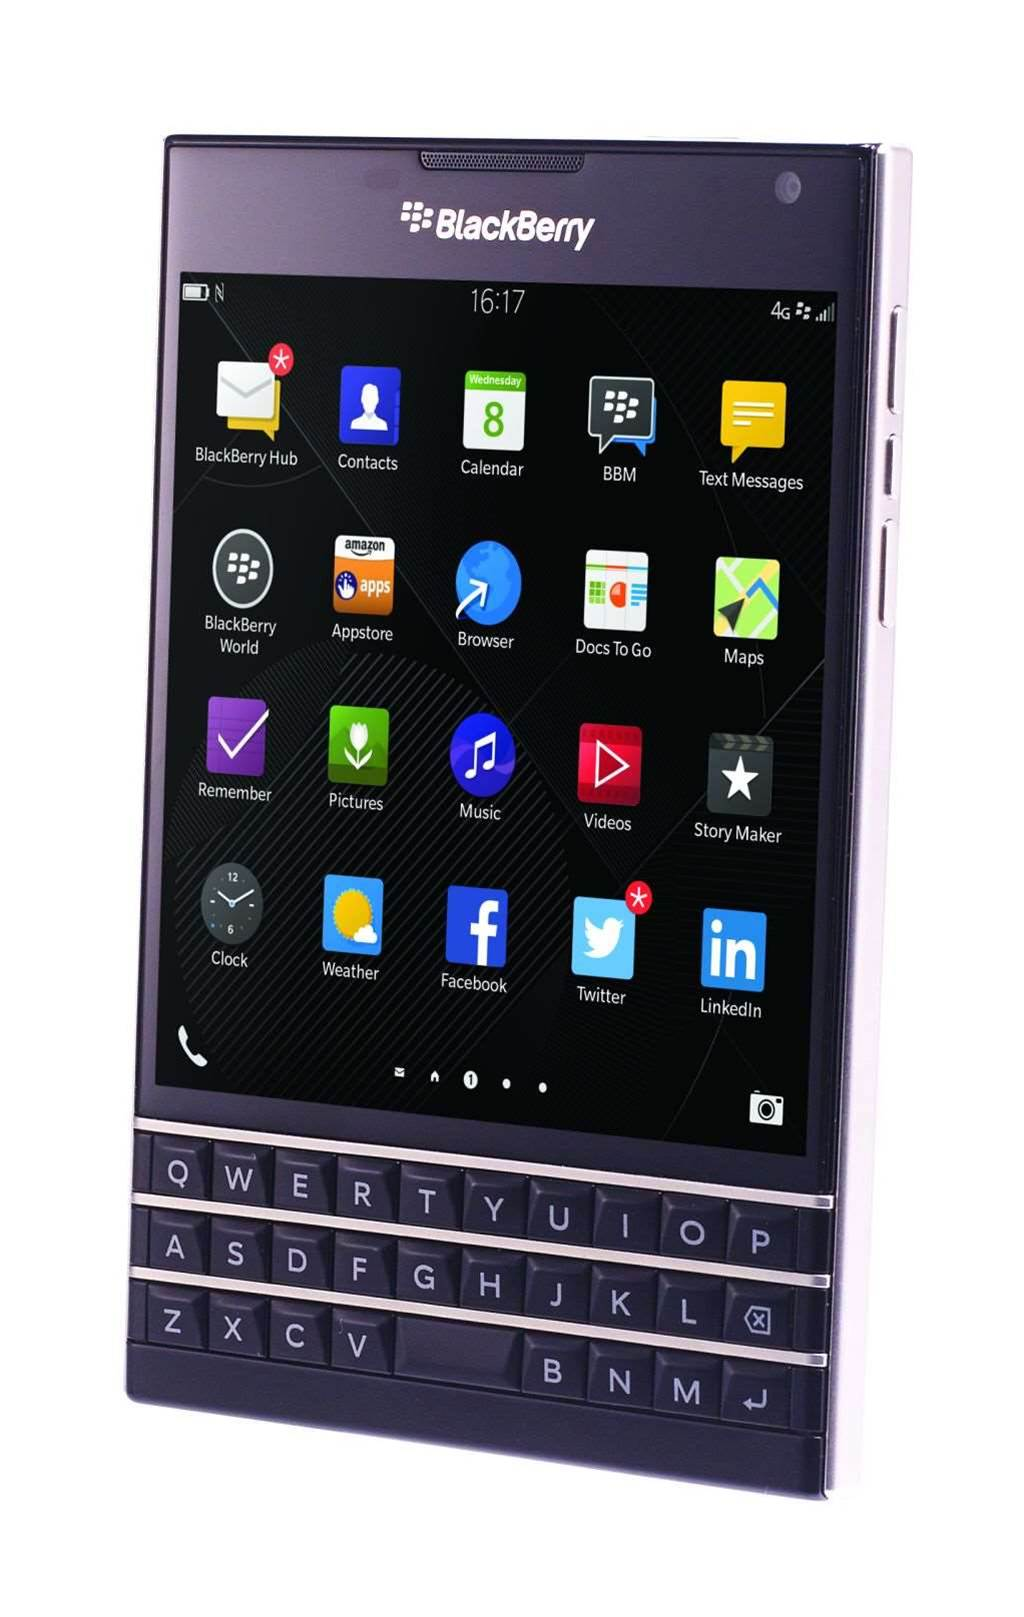 BlackBerry may put Android OS on new device